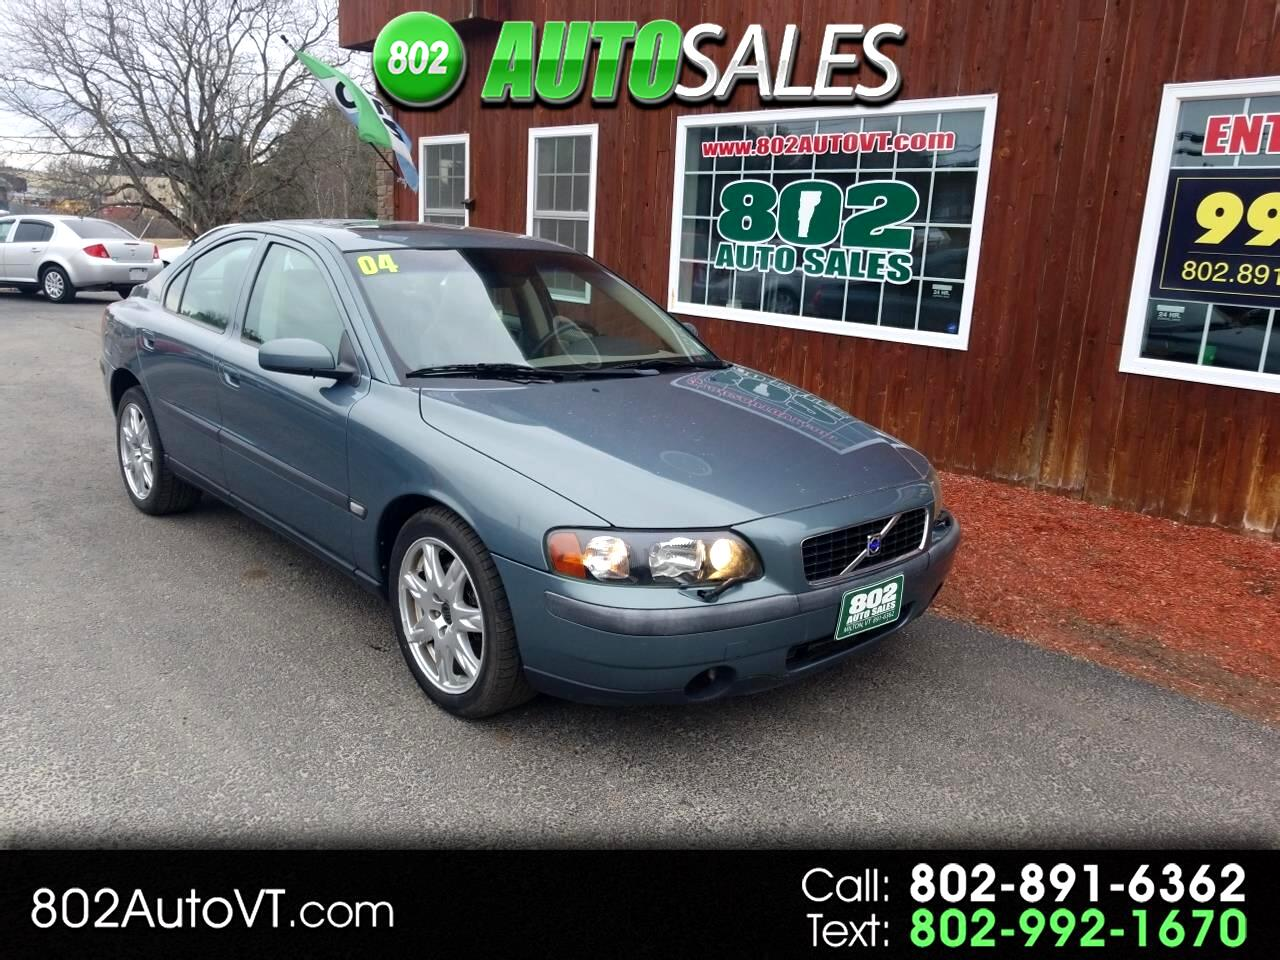 2004 Volvo S60 2.5L Turbo AWD